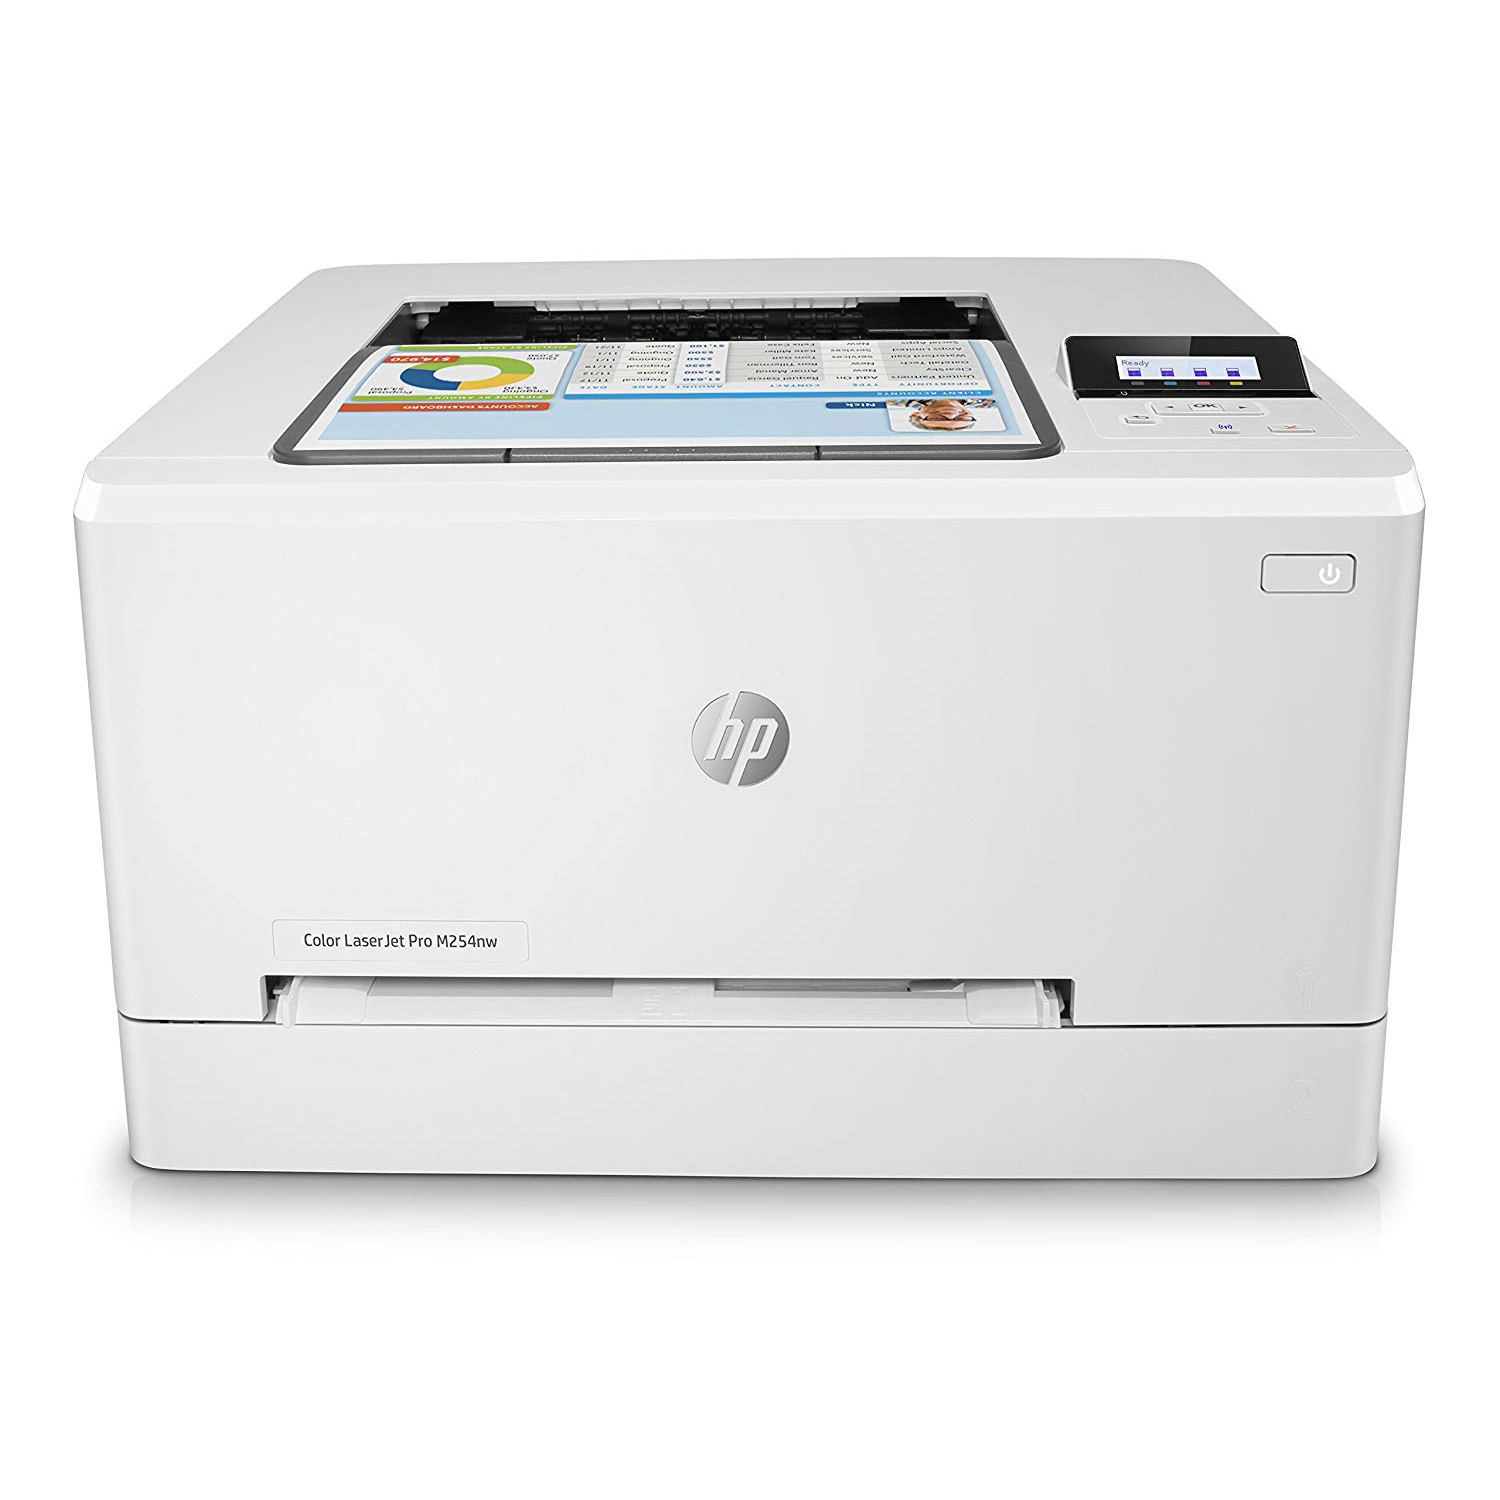 HP Color LaserJet Pro Printer M254nw (T6B59A)